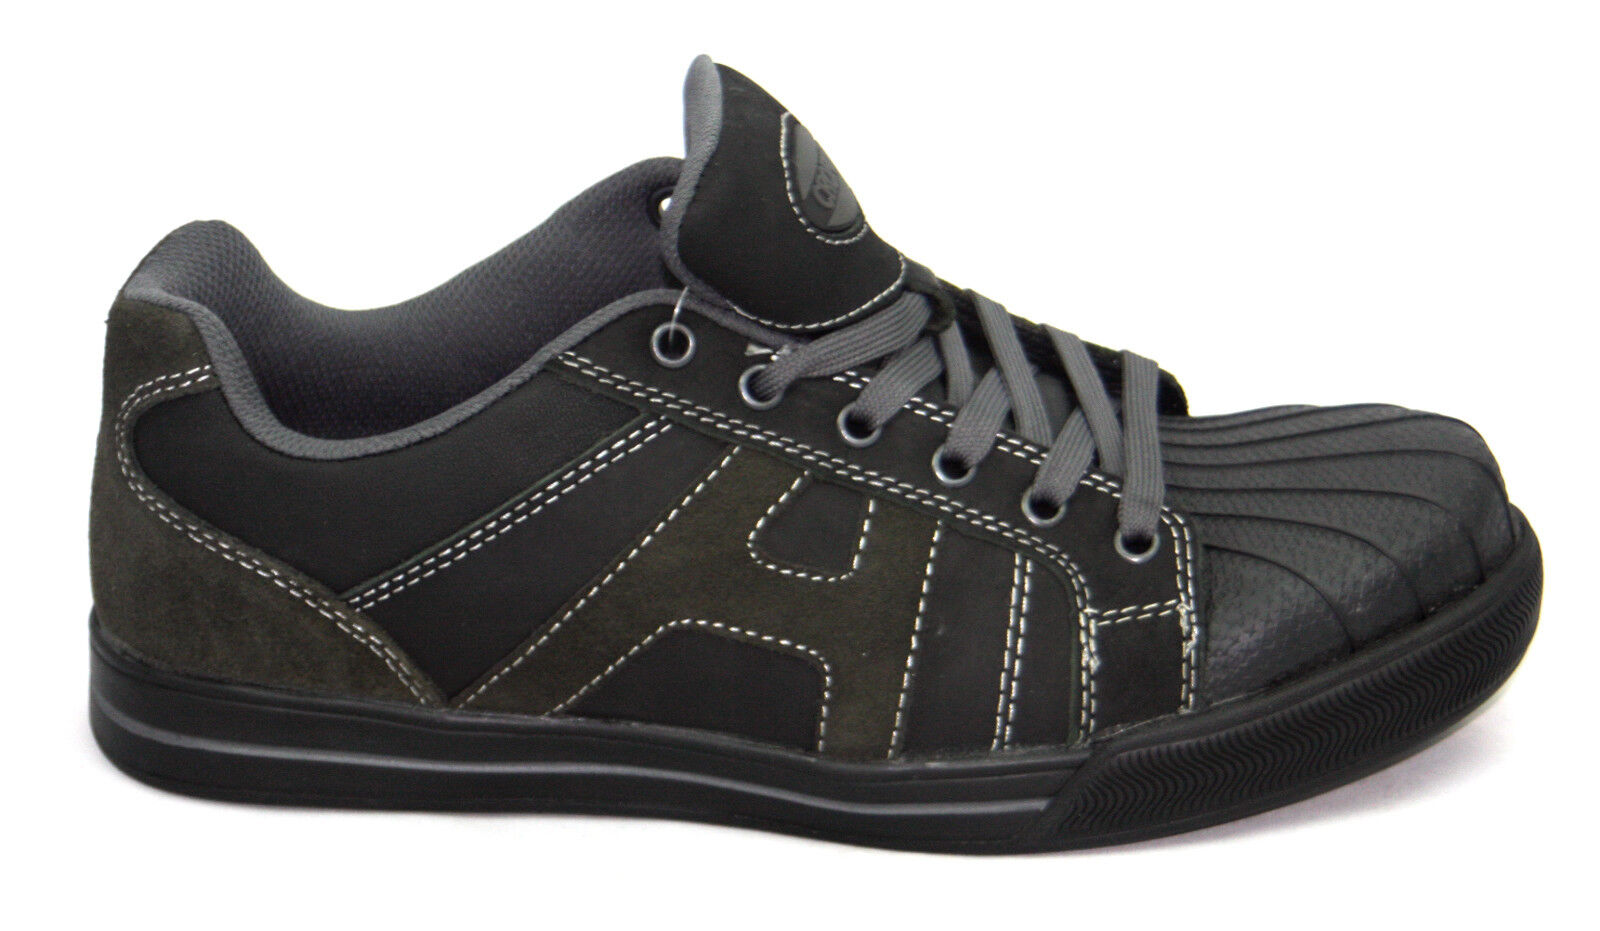 Designer Mens Work Safety Toe Cap Trainers Shoes Boots Water Resistant Croford